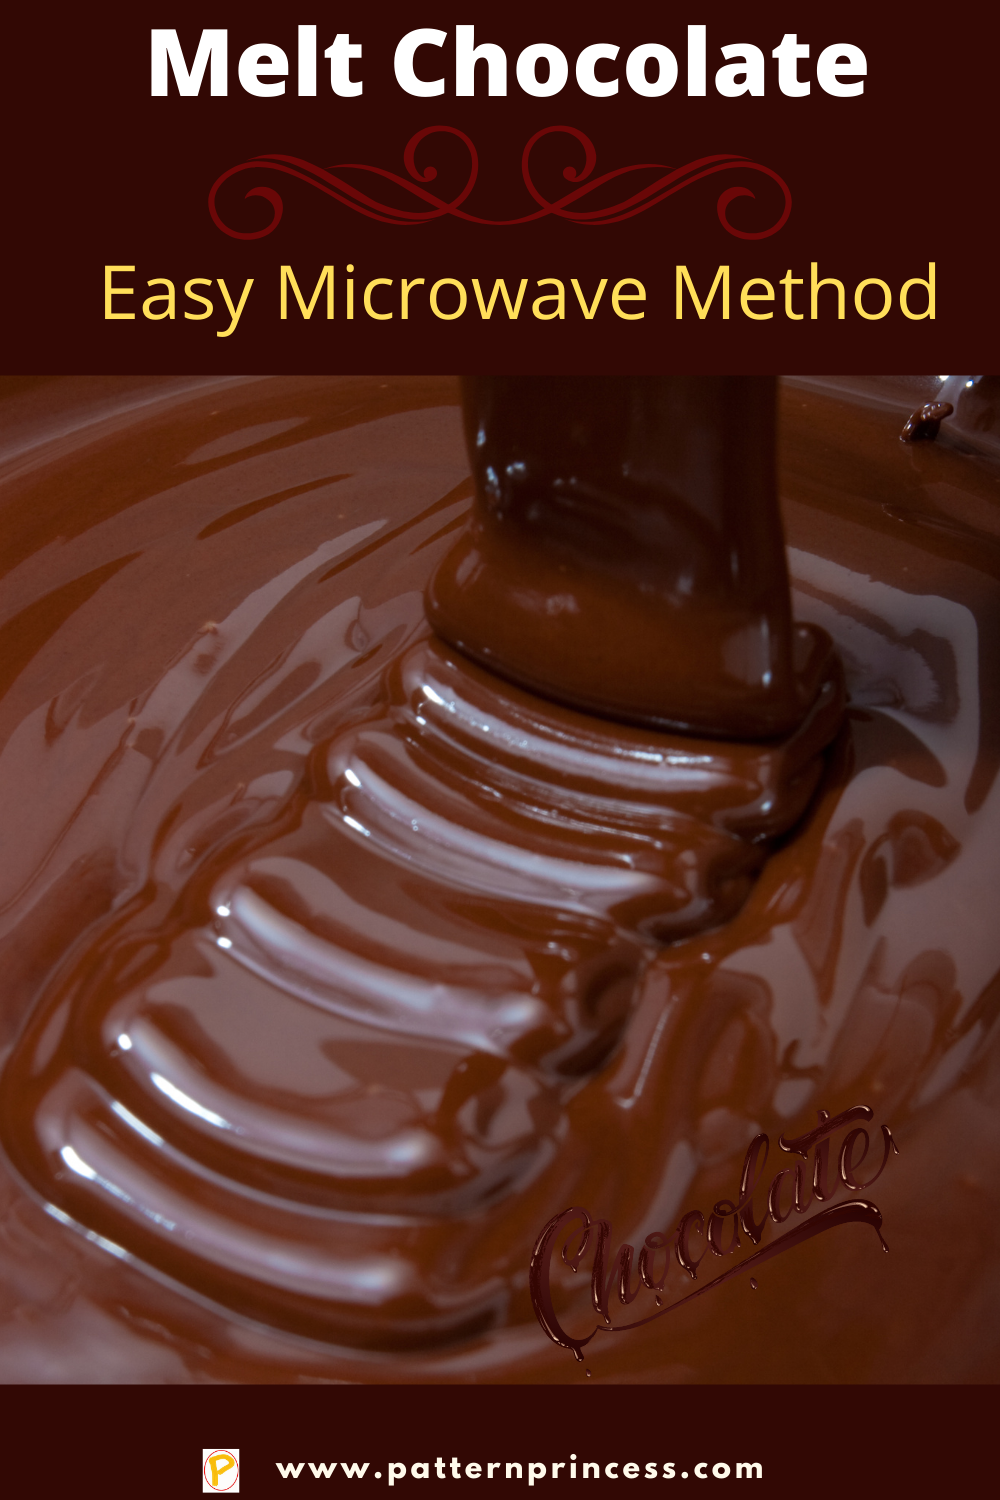 How to Melt Chocolate in the Microwave